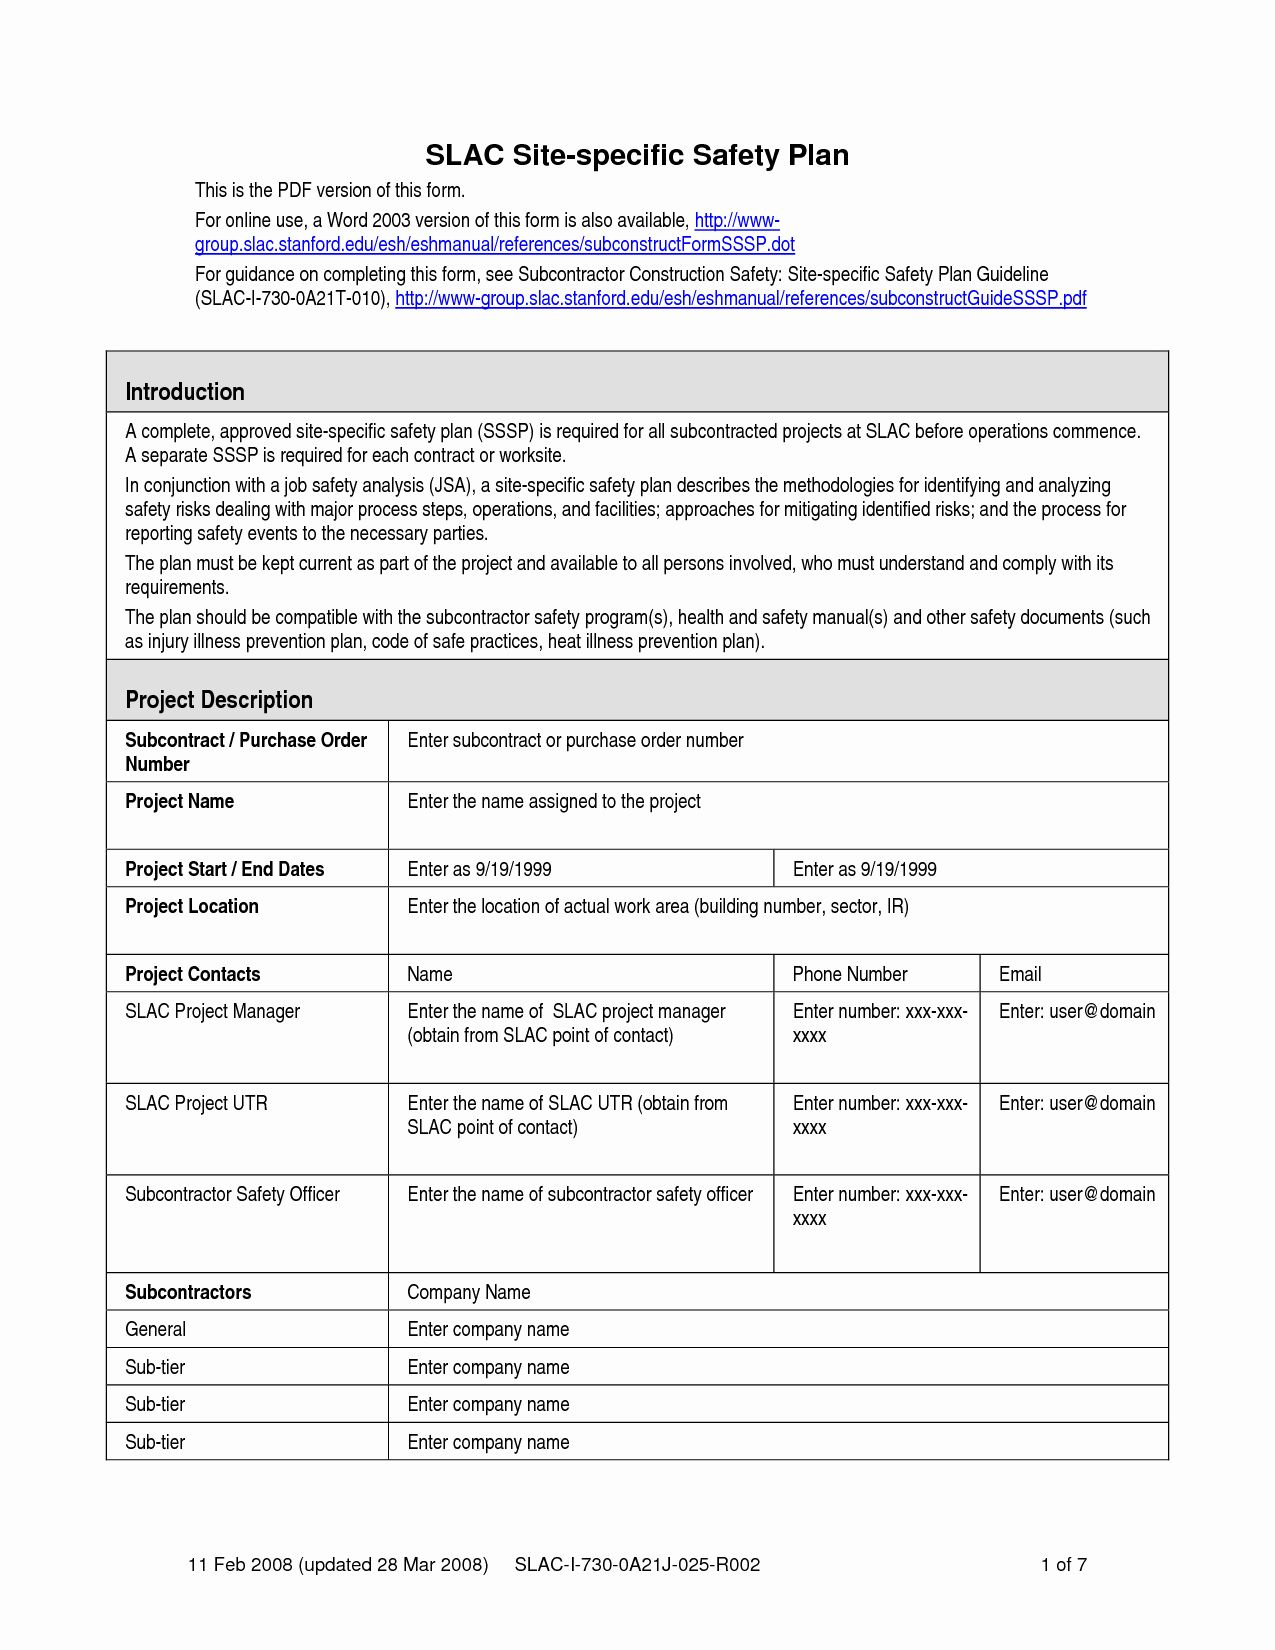 Construction Safety Plan Template Fresh Safety Plan Template In 2020 Construction Safety Treatment Plan Template How To Plan Site specific safety plans template